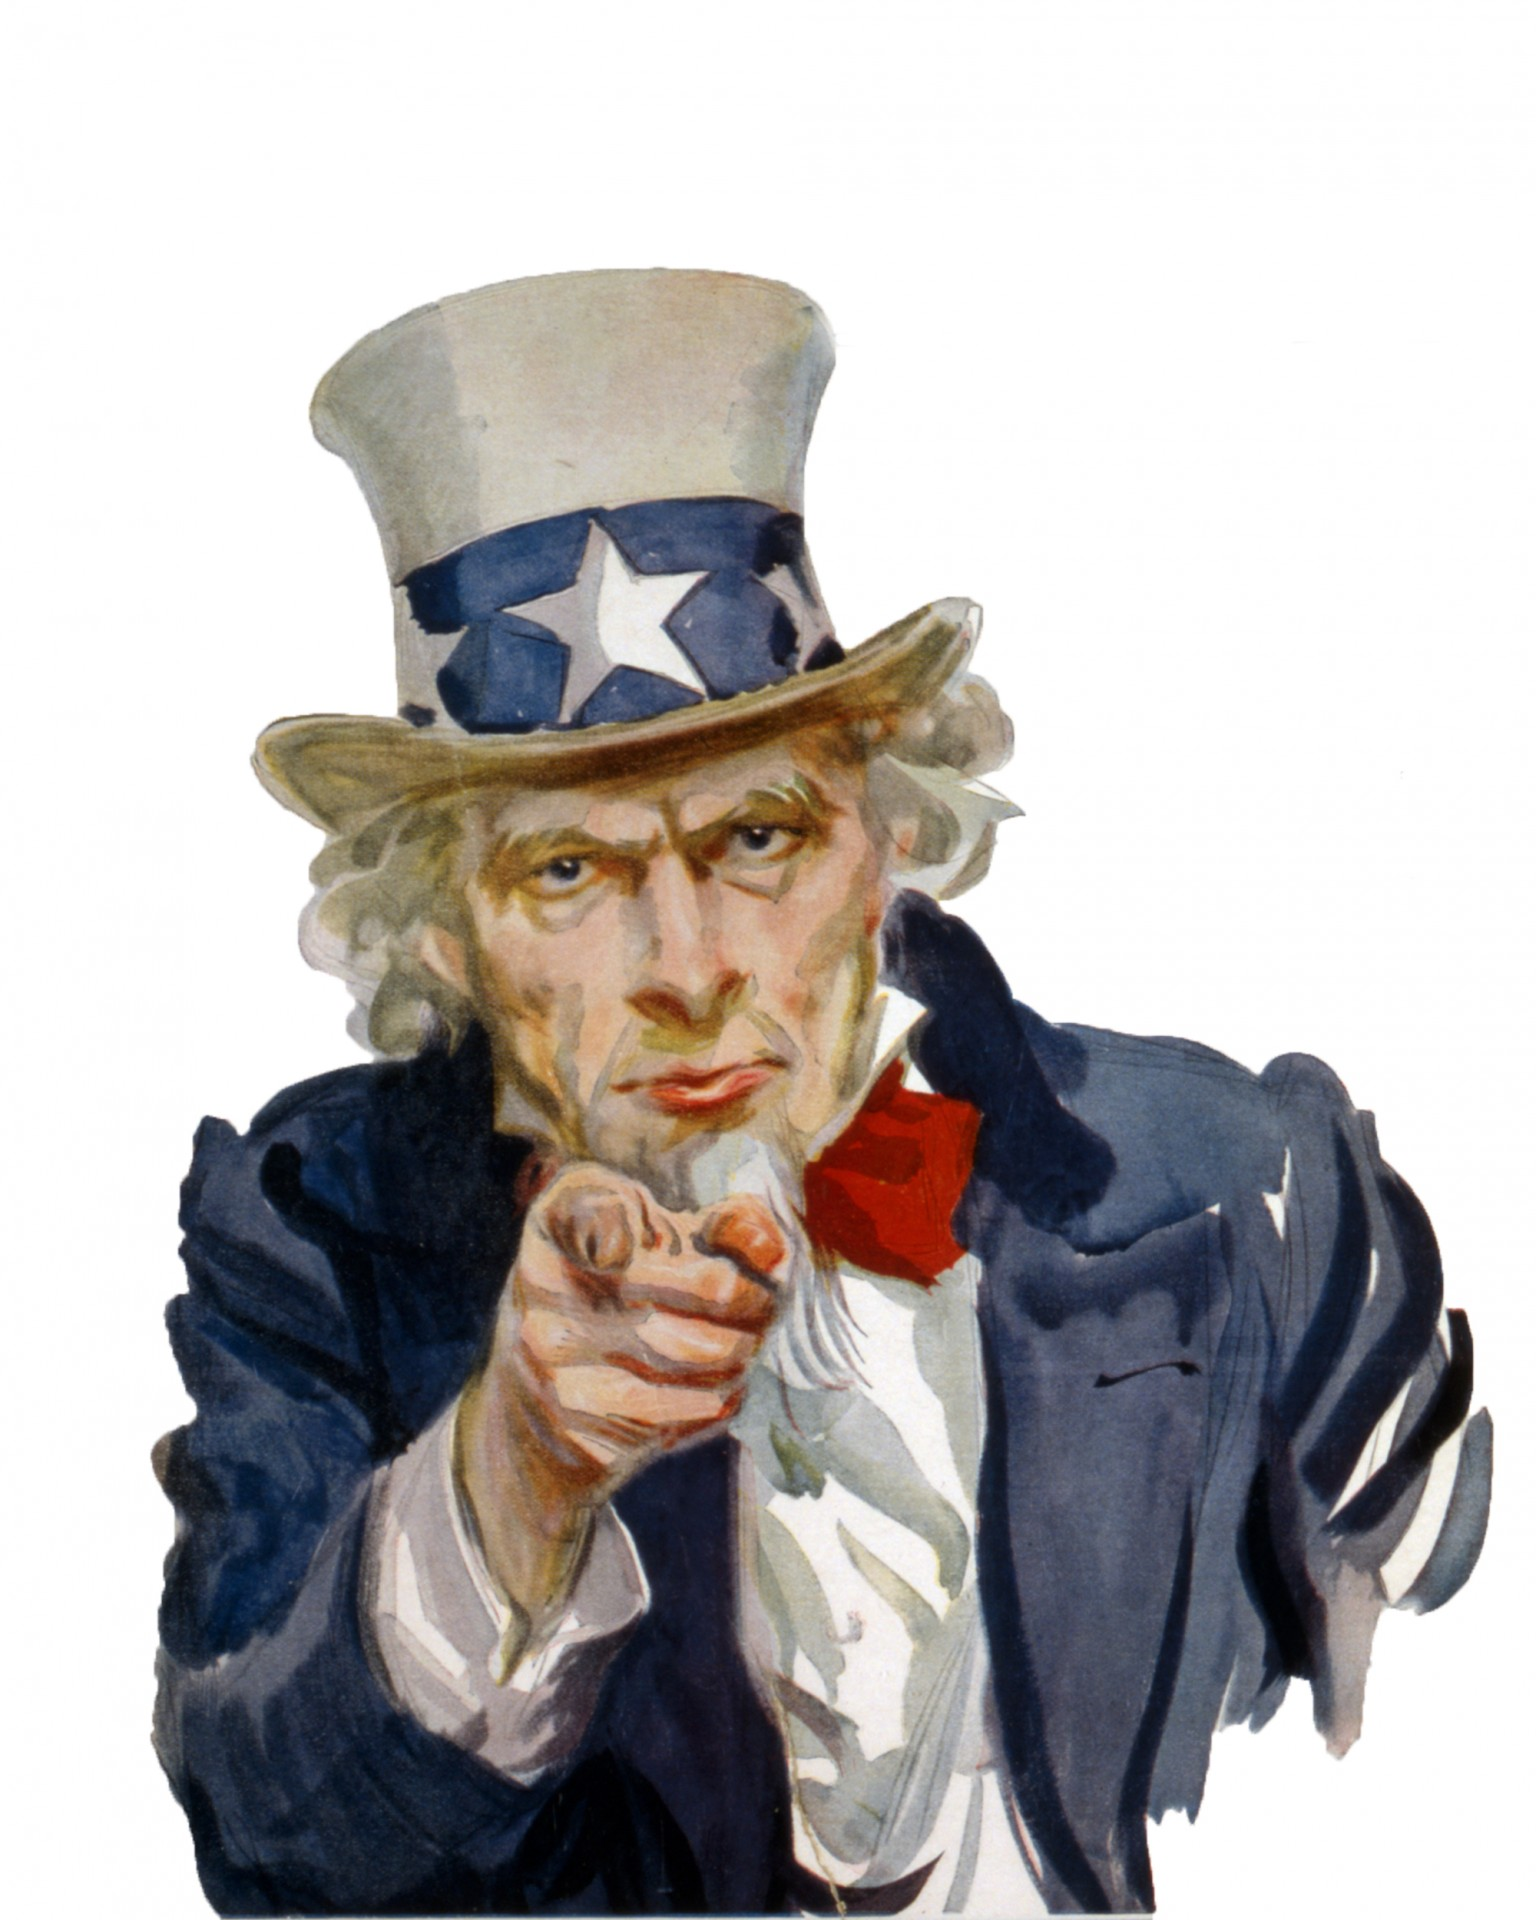 Free uncle sam clipart clip art black and white download Uncle Sam Wants You Free Stock Photo - Public Domain Pictures clip art black and white download